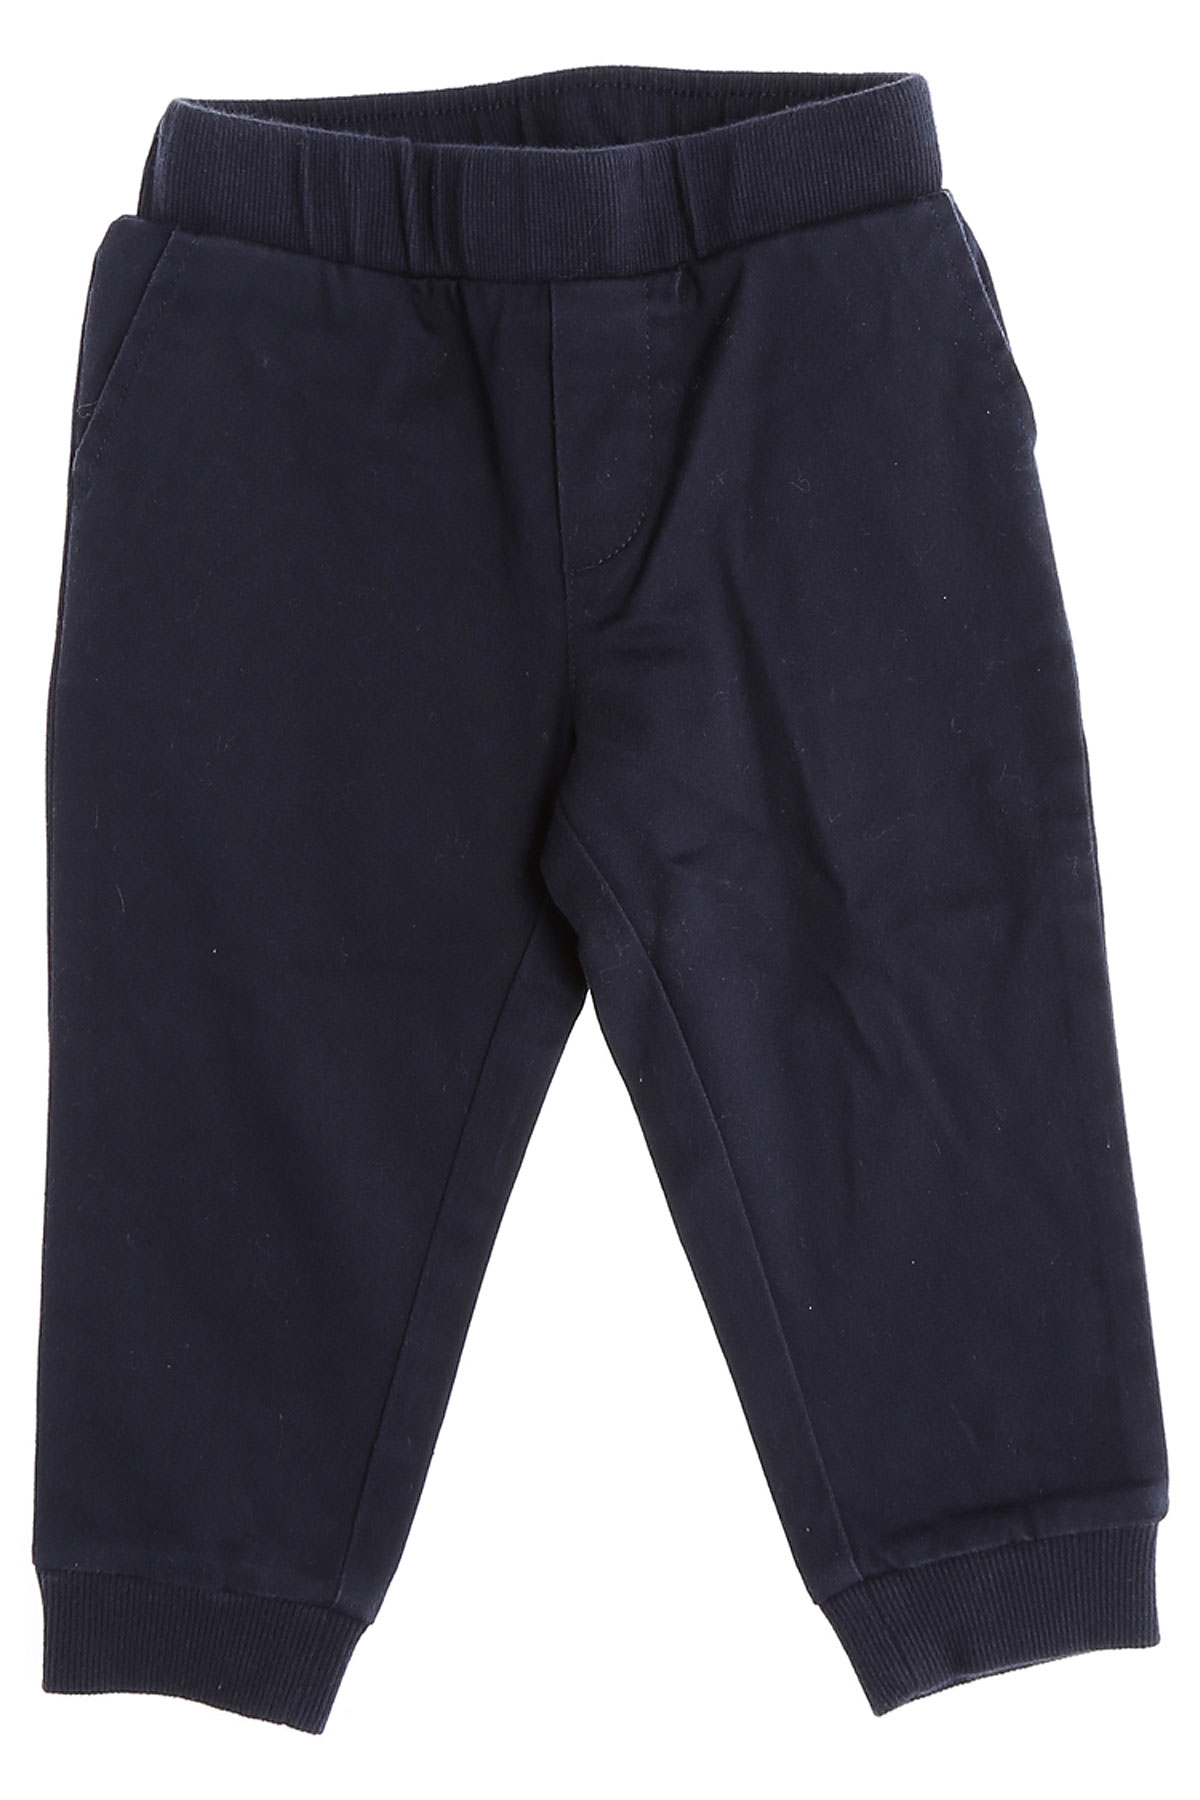 Emporio Armani Baby Sweatpants for Boys On Sale in Outlet, Blue, Cotton, 2019, 18 M 2Y